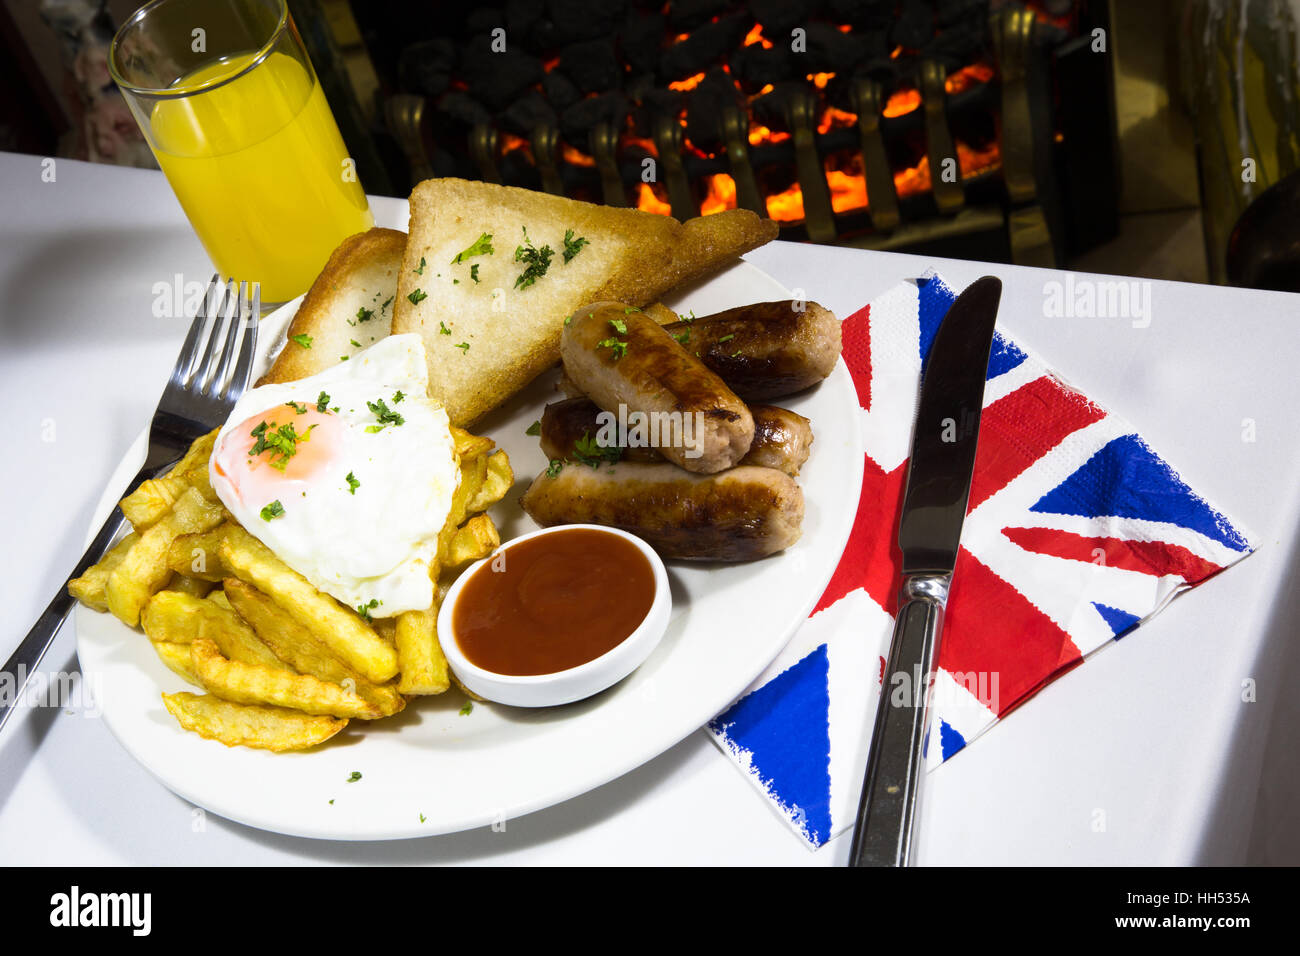 English pub dinner of Sausage, fried egg and chips/fries. - Stock Image